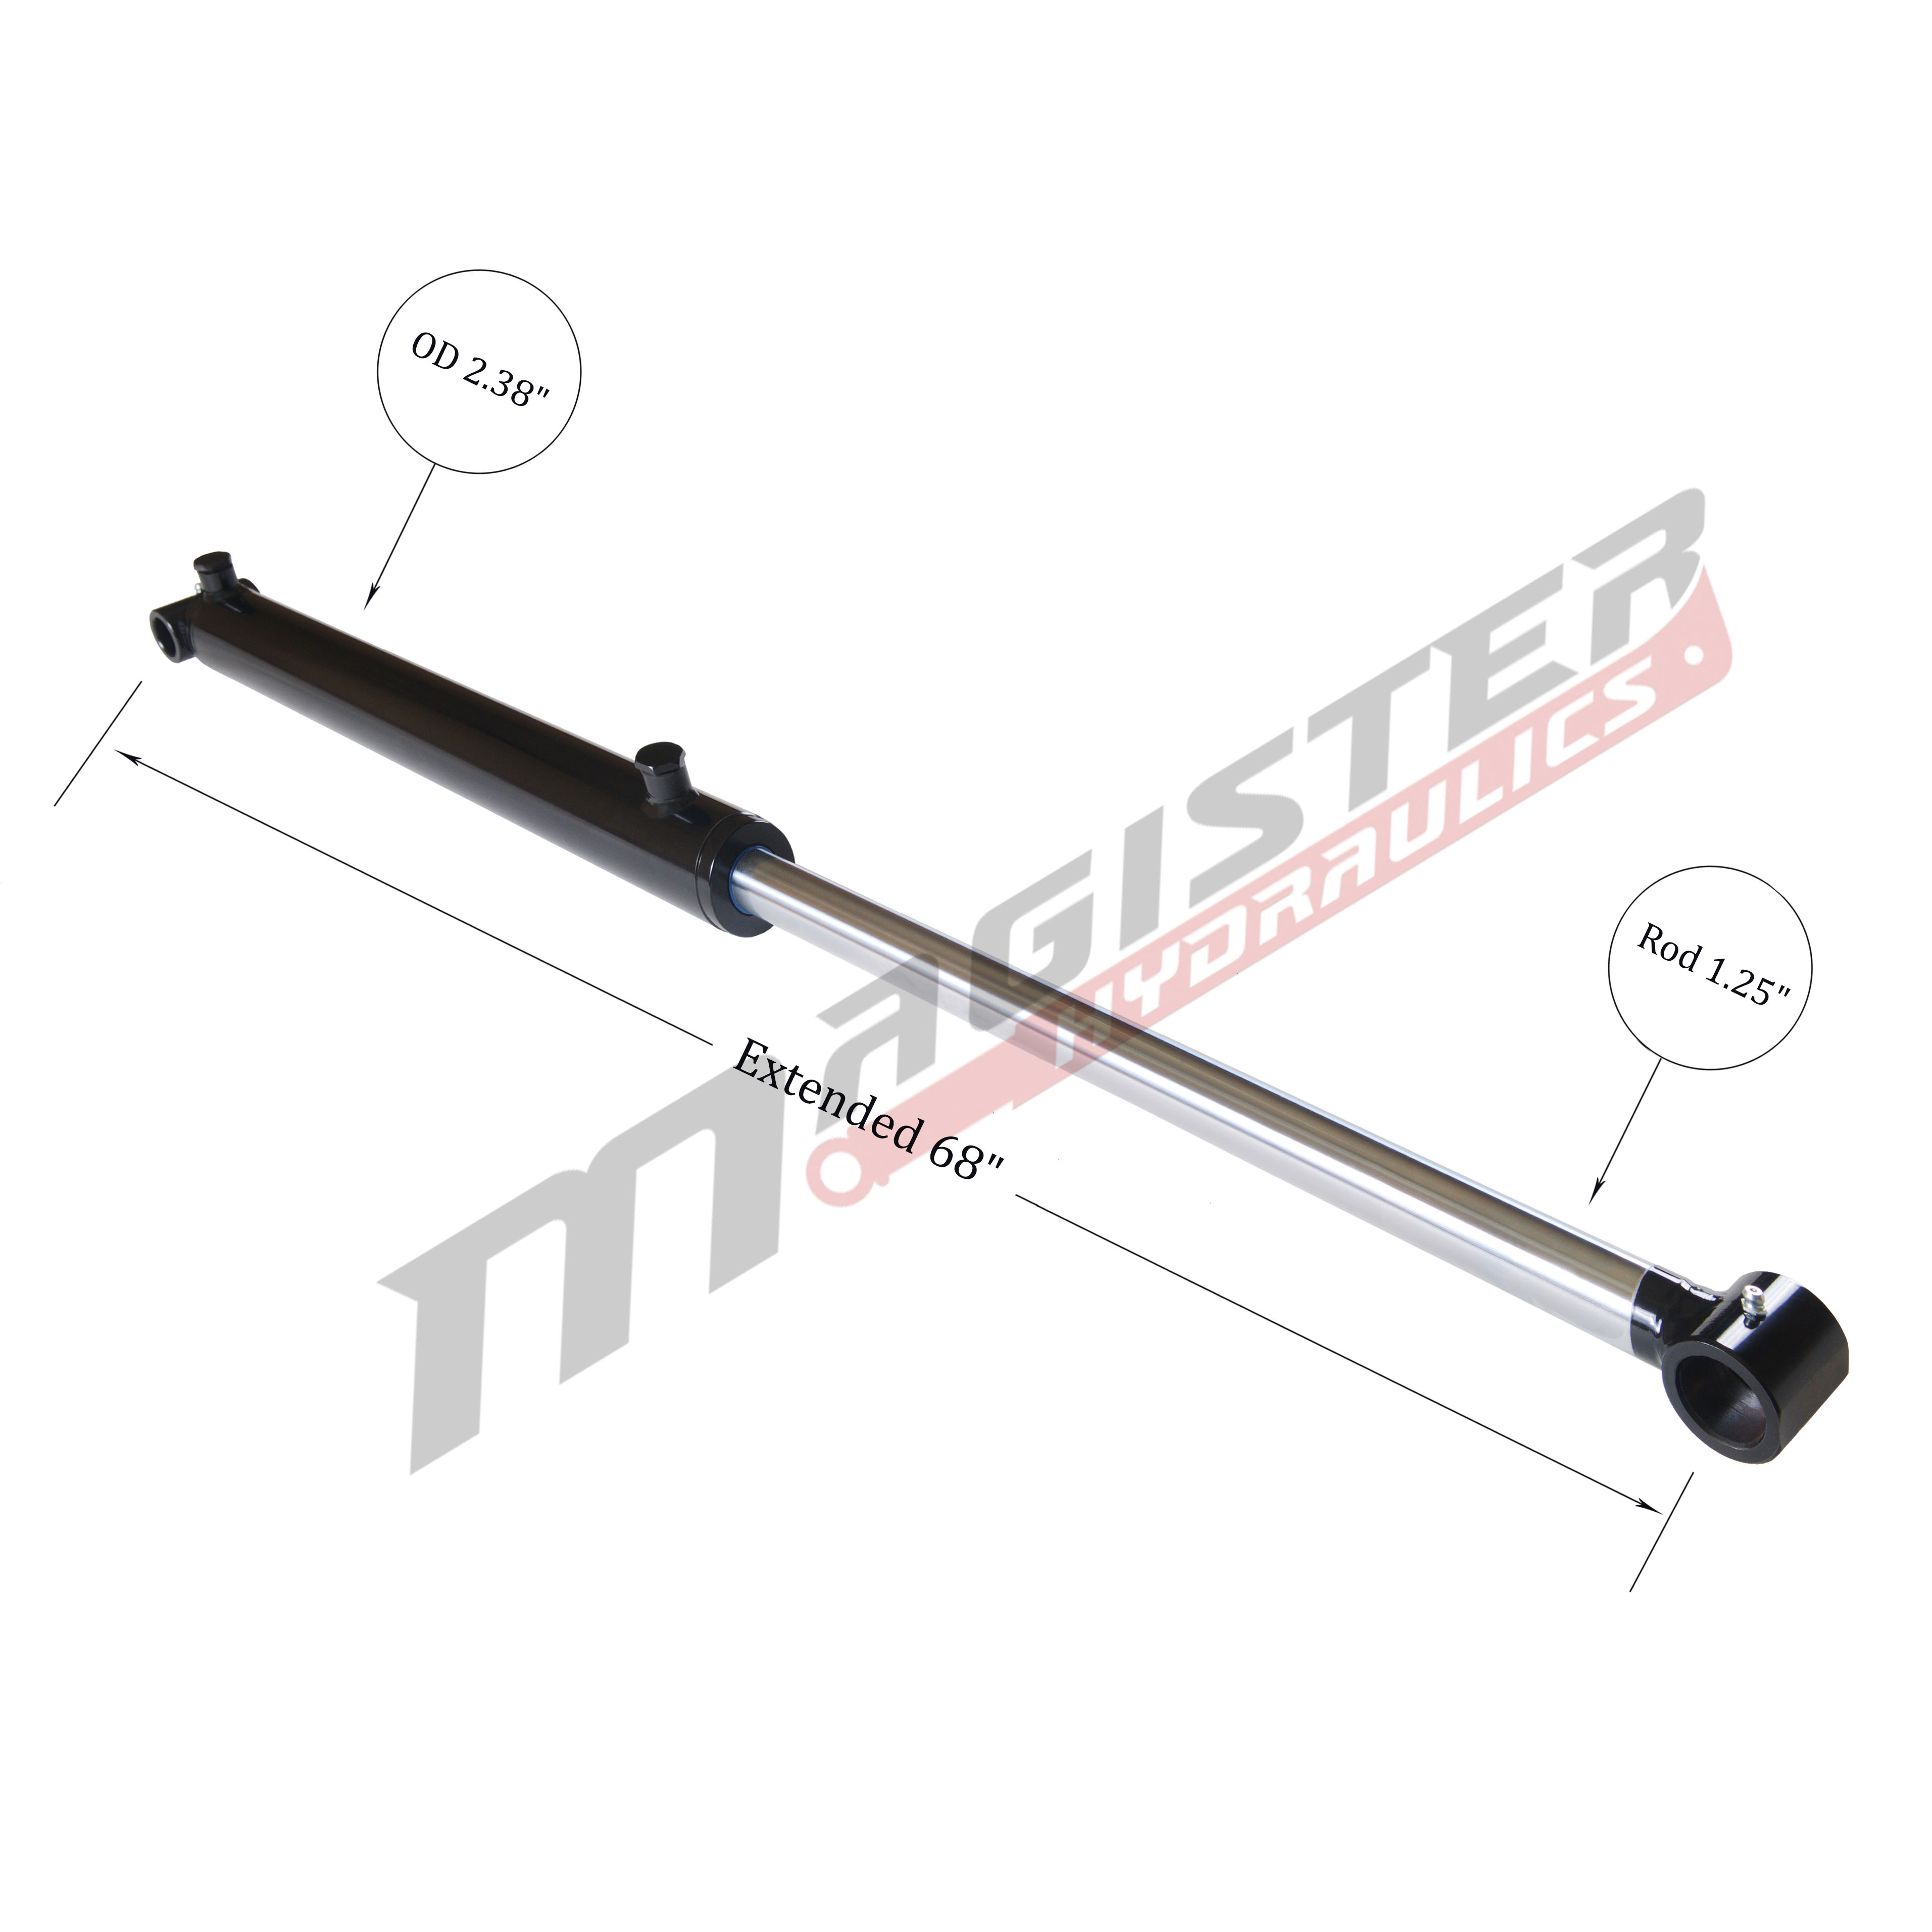 2 bore x 30 stroke hydraulic cylinder, welded cross tube double acting cylinder | Magister Hydraulics